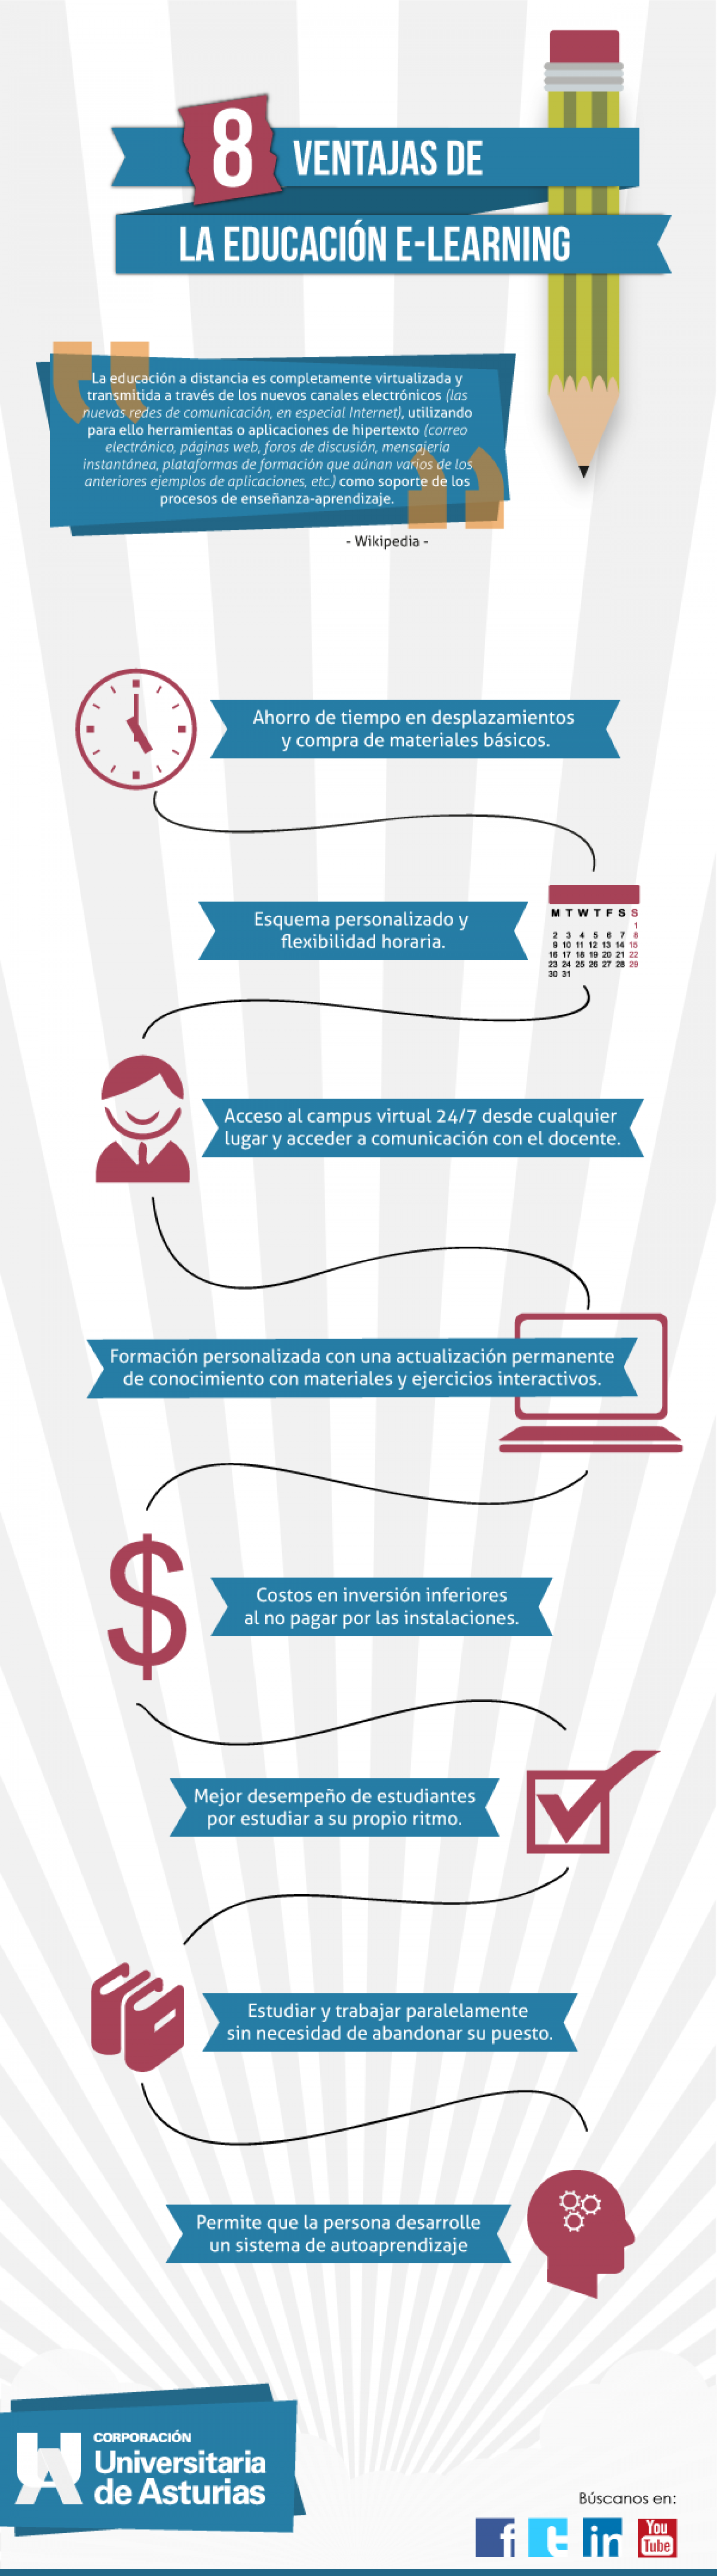 8 ventajas de la educación e-learning Infographic